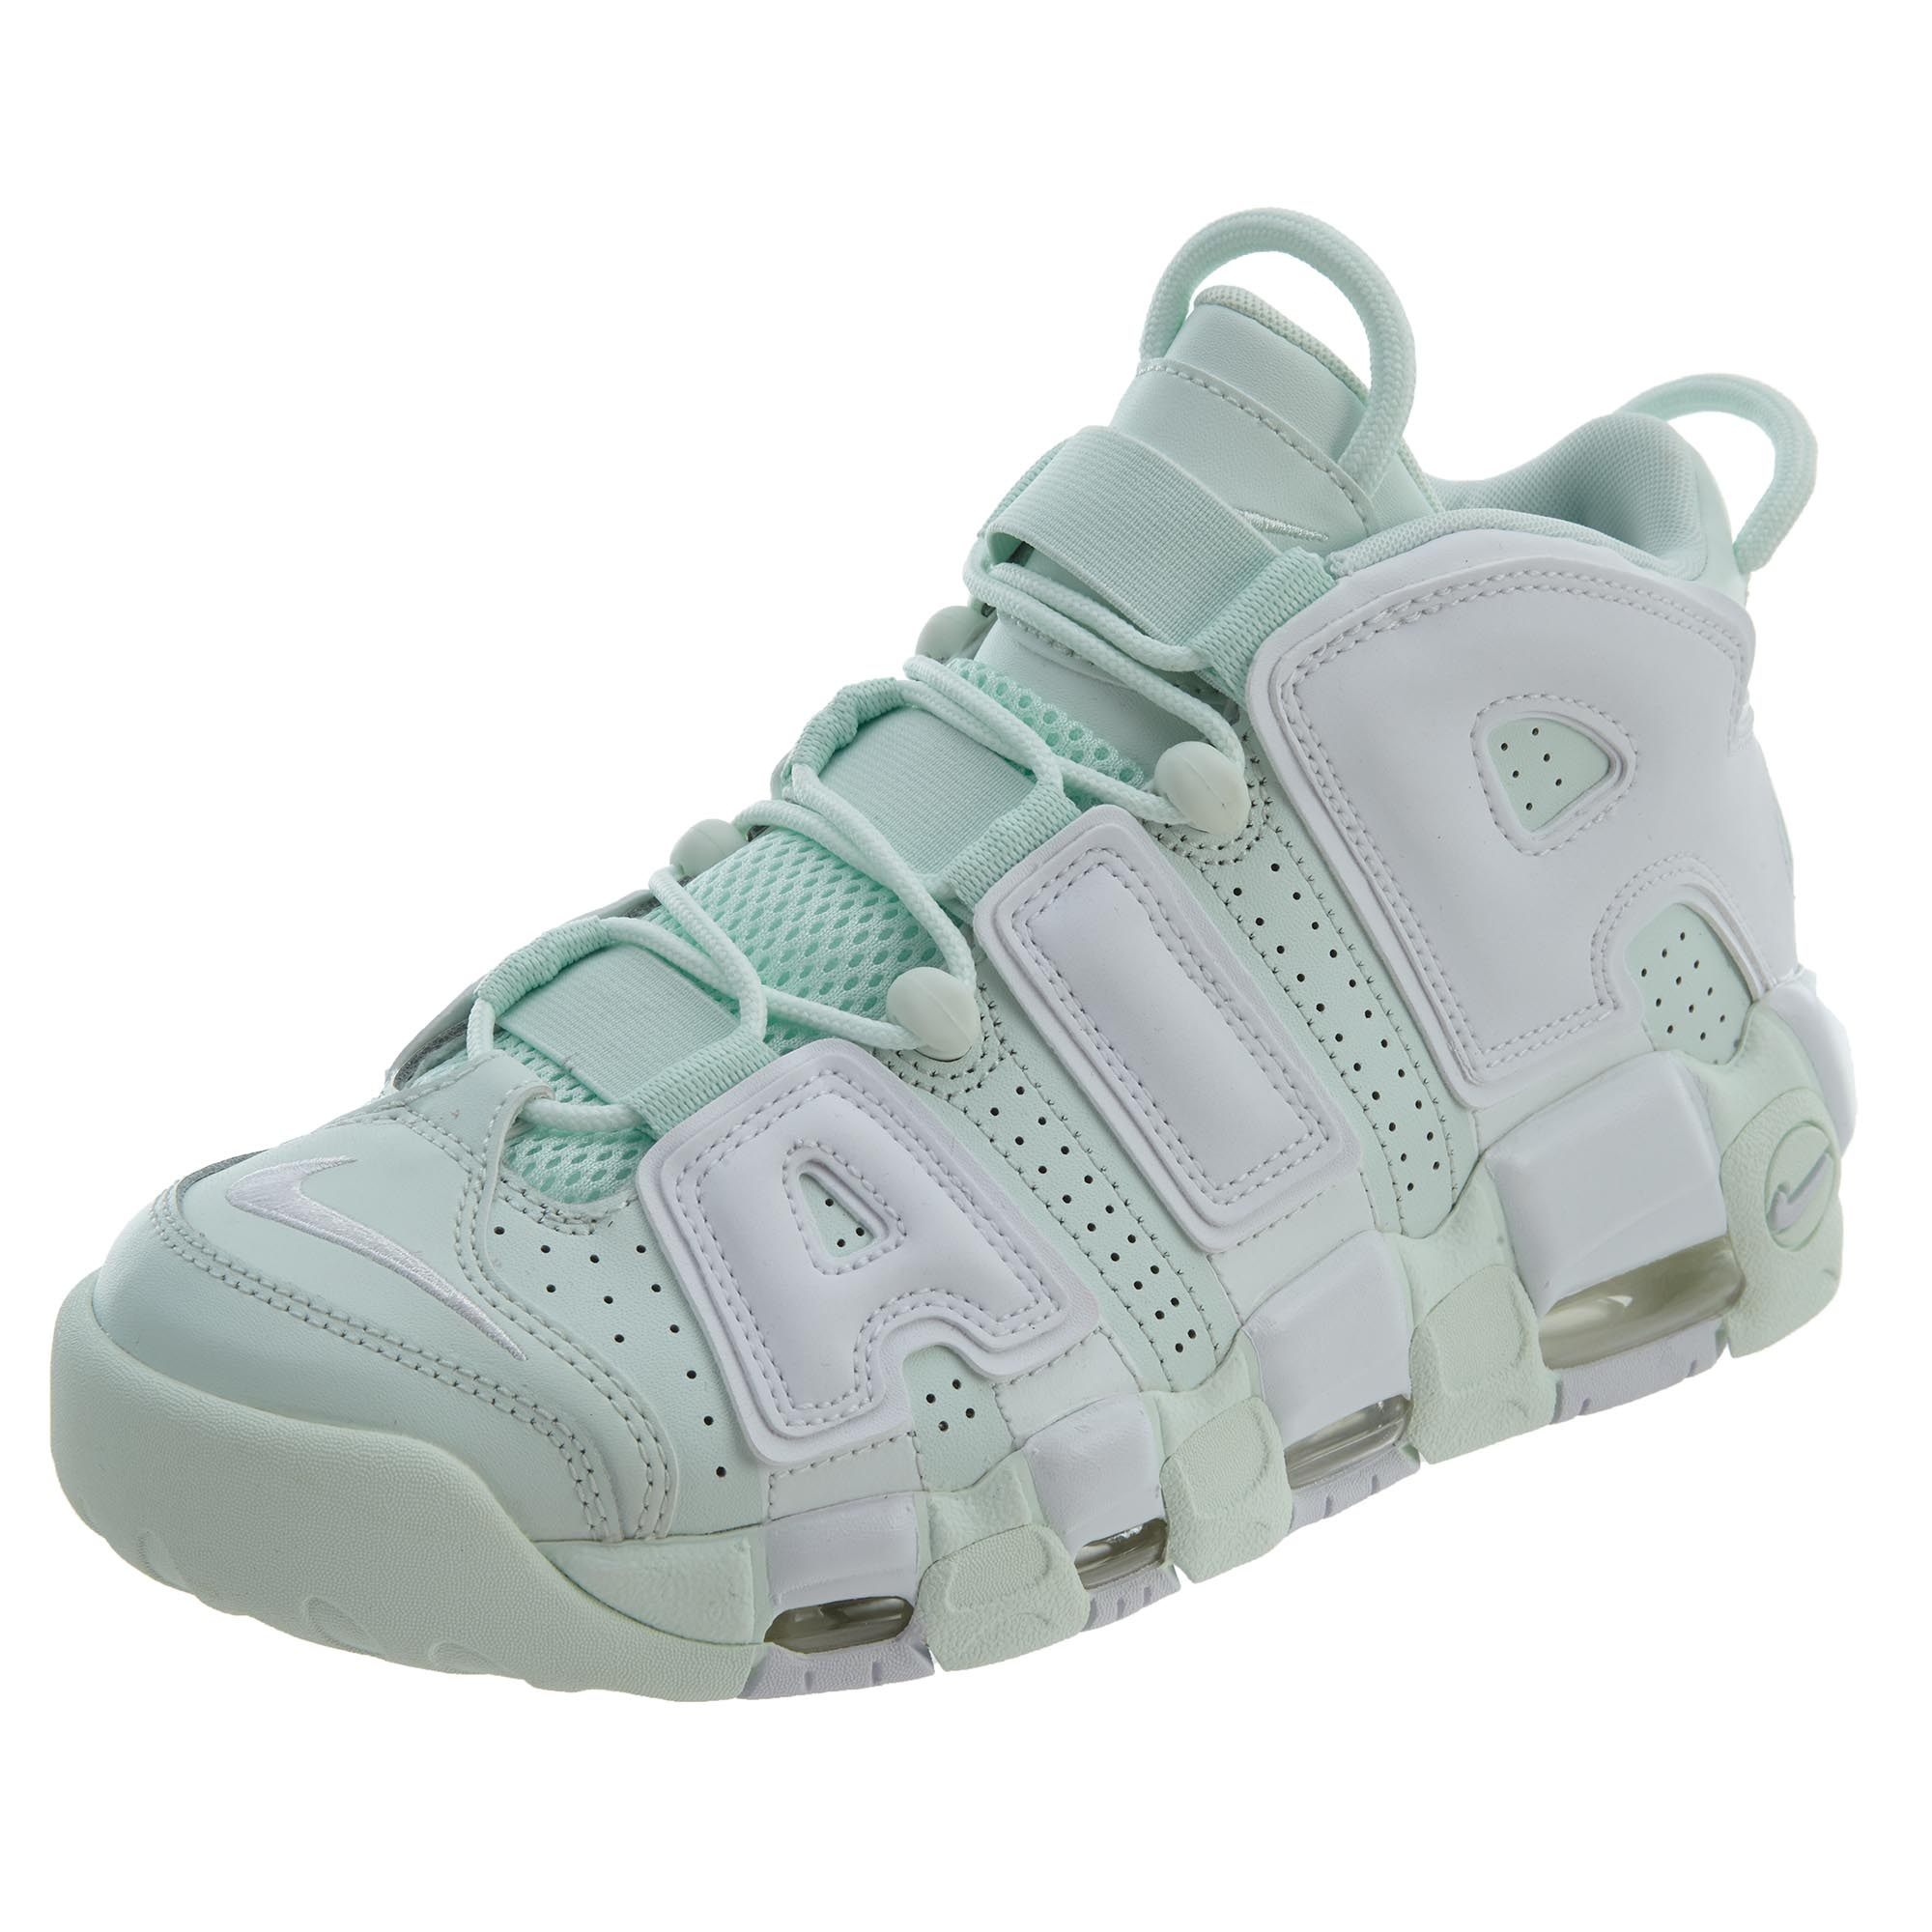 Details about Nike Womens Air More Uptempo Shoes 917593-300 3651454fec39